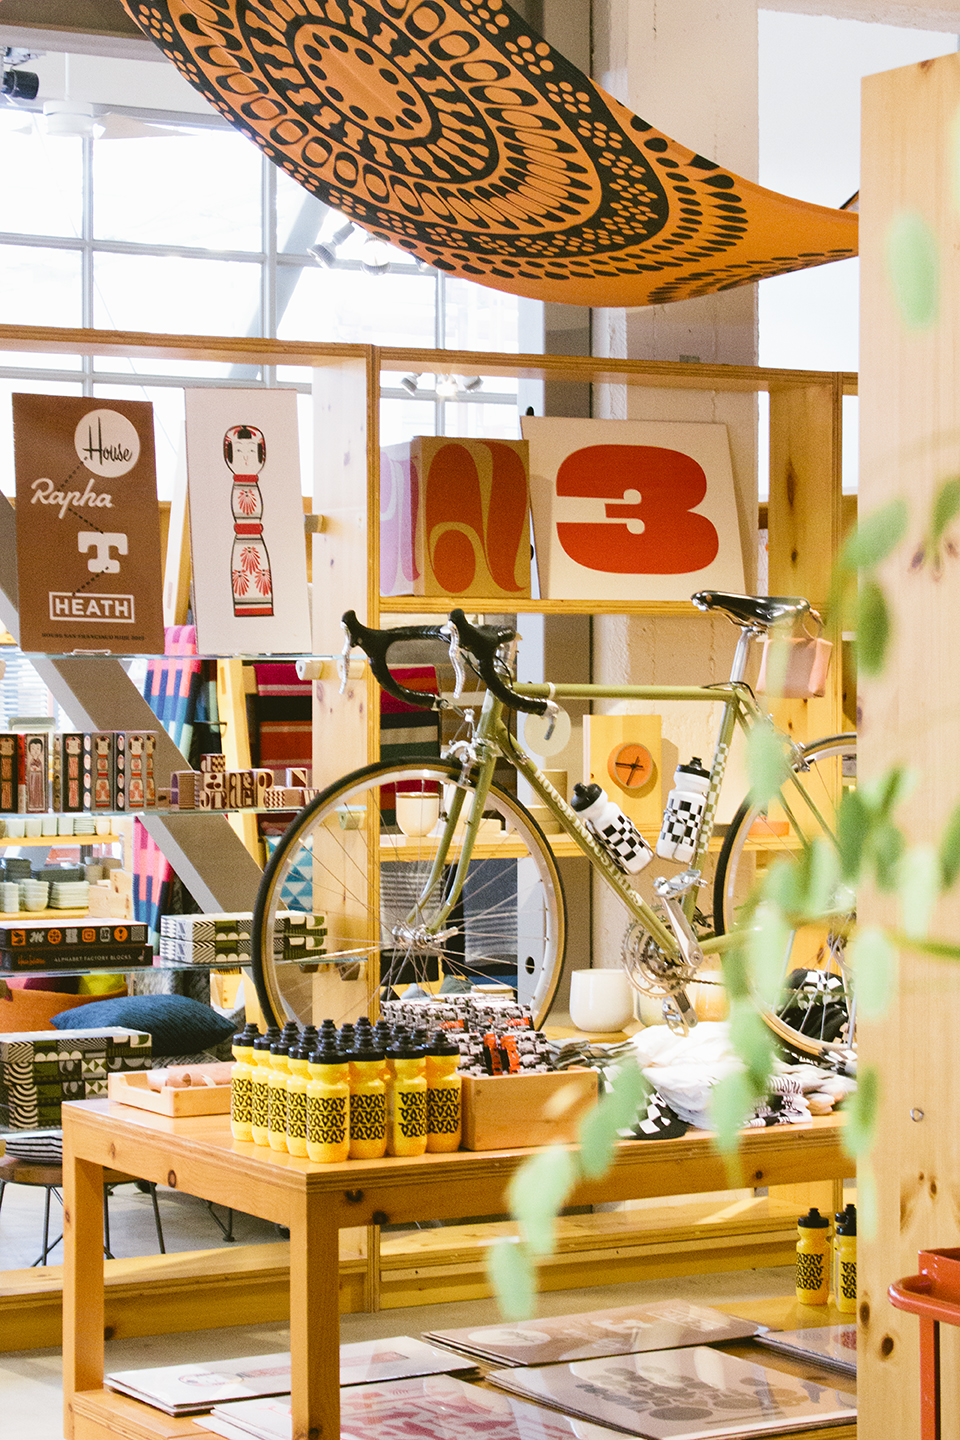 Prints and bikes and books and all good things.